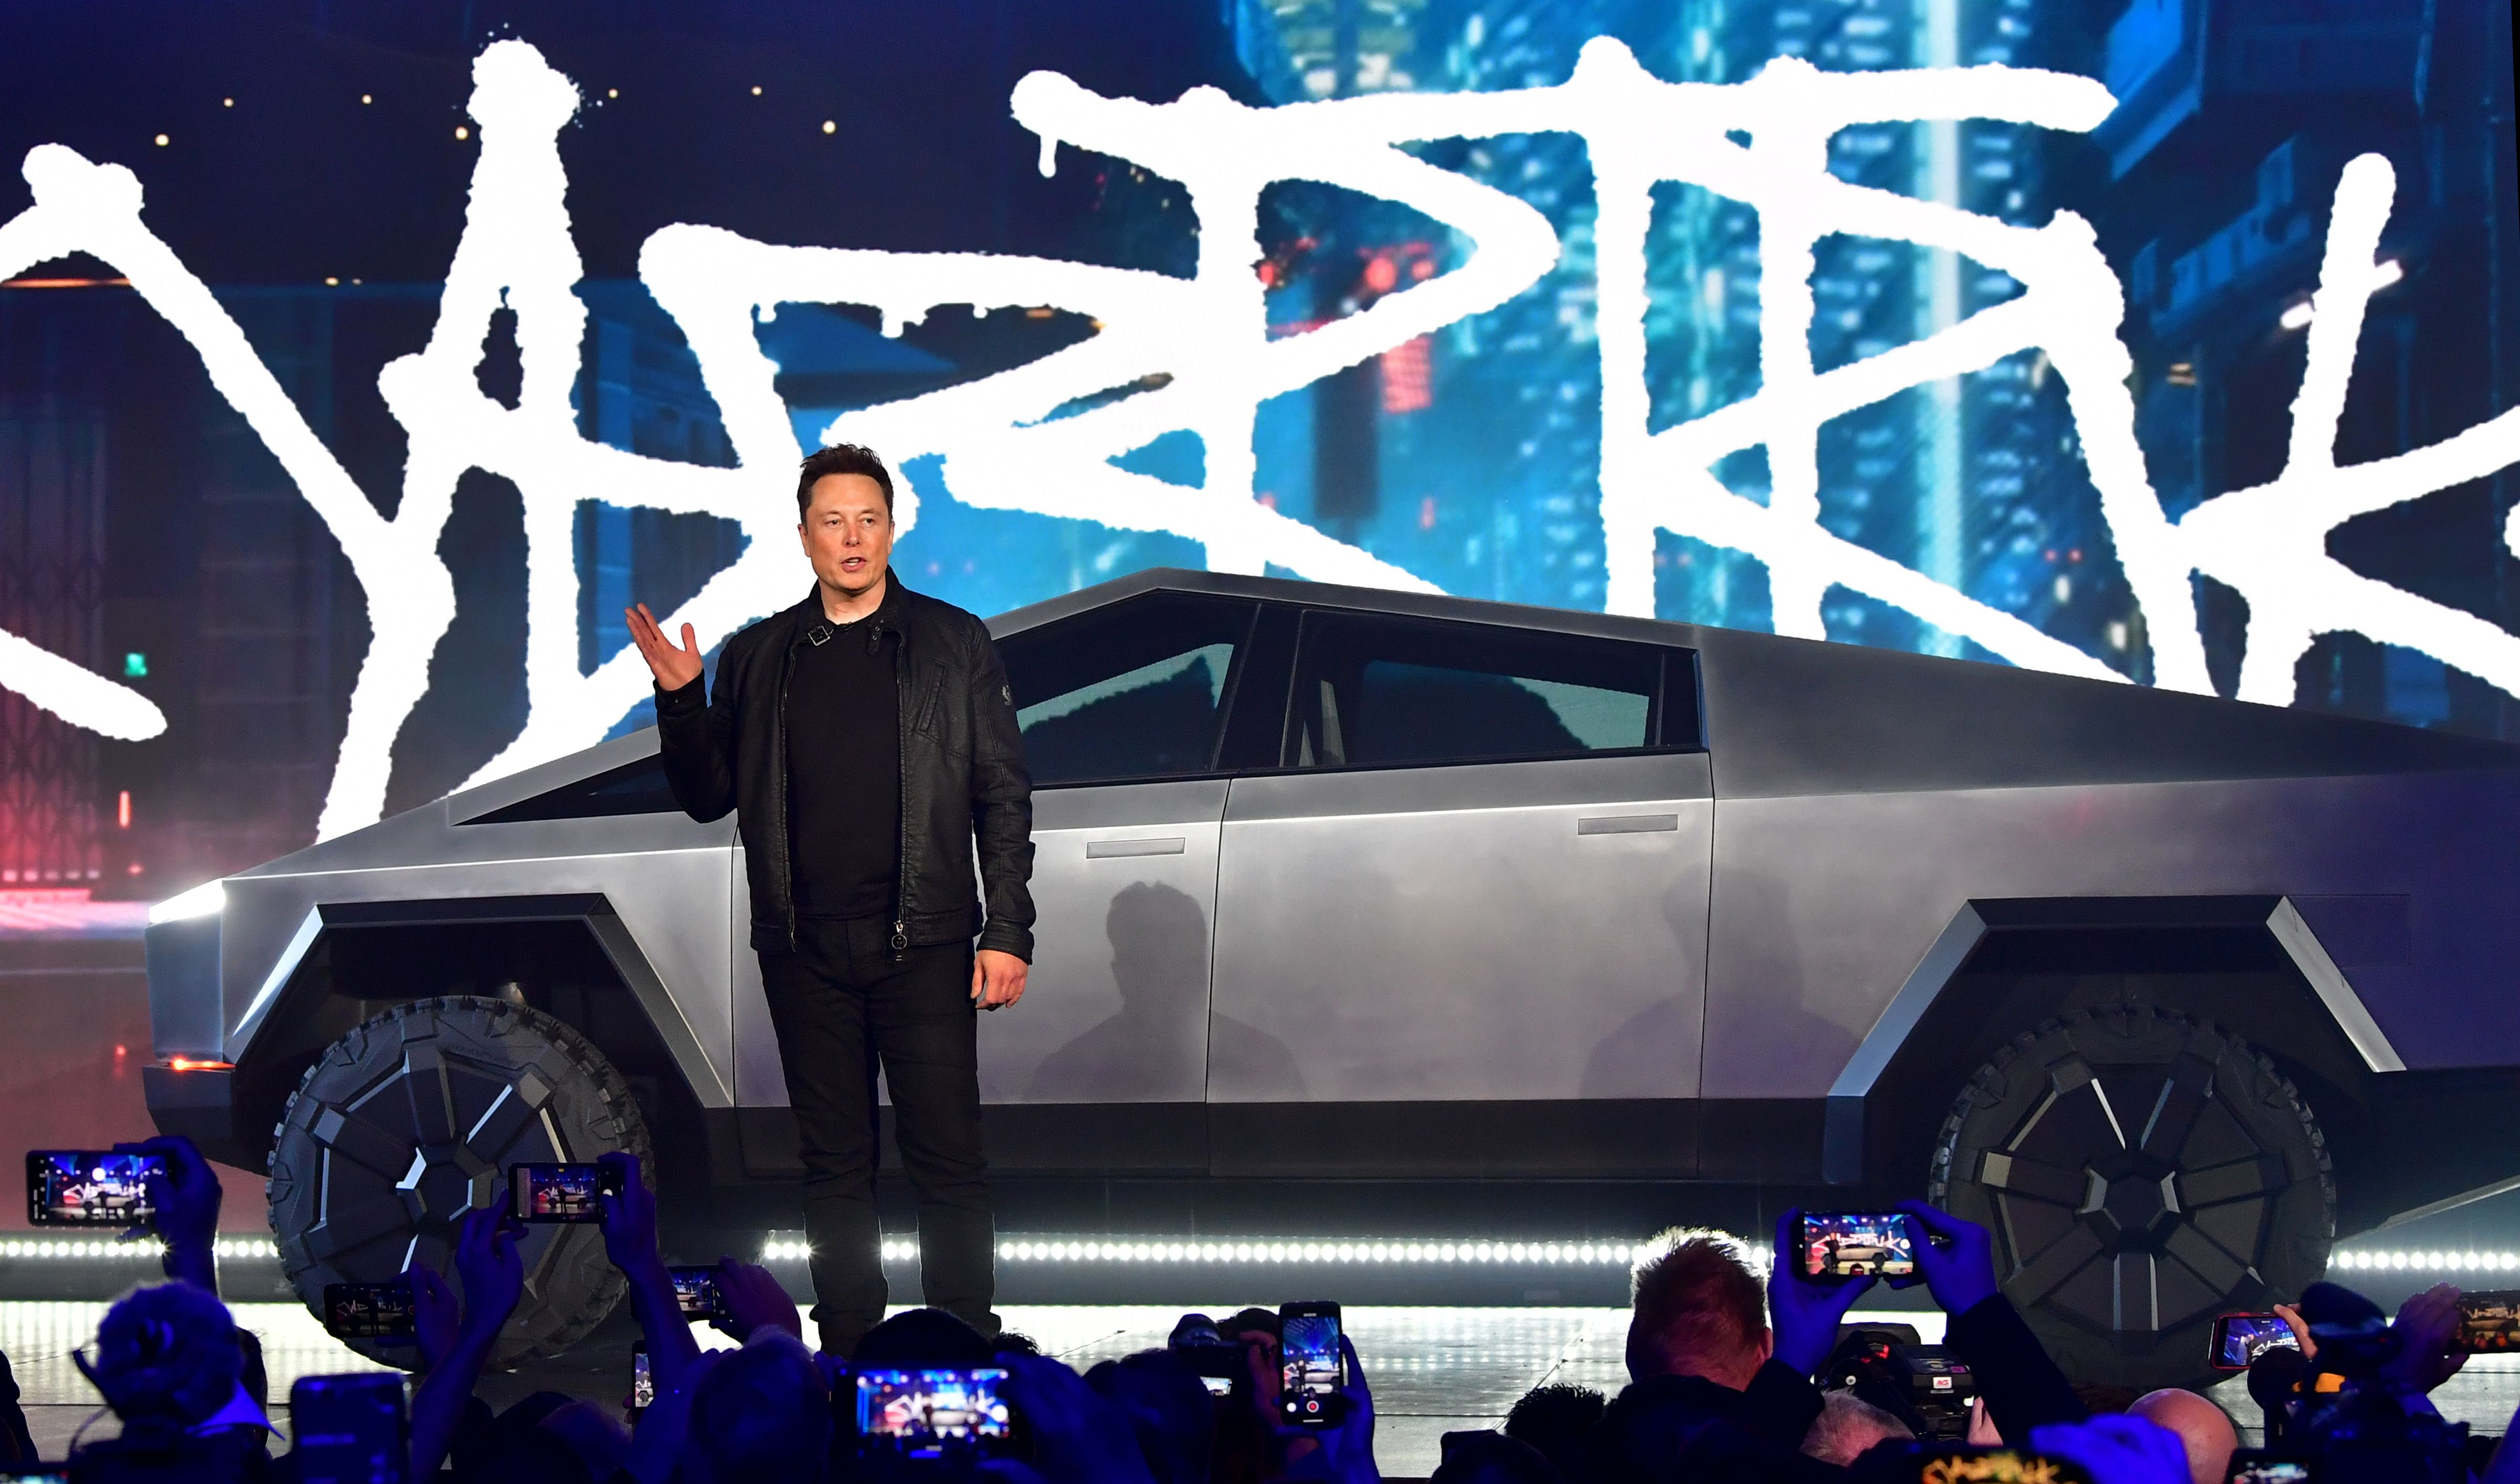 Tesla co-founder and CEO Elon Musk introduces the newly unveiled all-electric battery-powered Tesla Cybertruck at Tesla Design Center in Hawthorne, California on November 21, 2019. (Photo by Frederic J. BROWN / AFP) (Photo by FREDERIC J. BROWN/AFP via Getty Images)